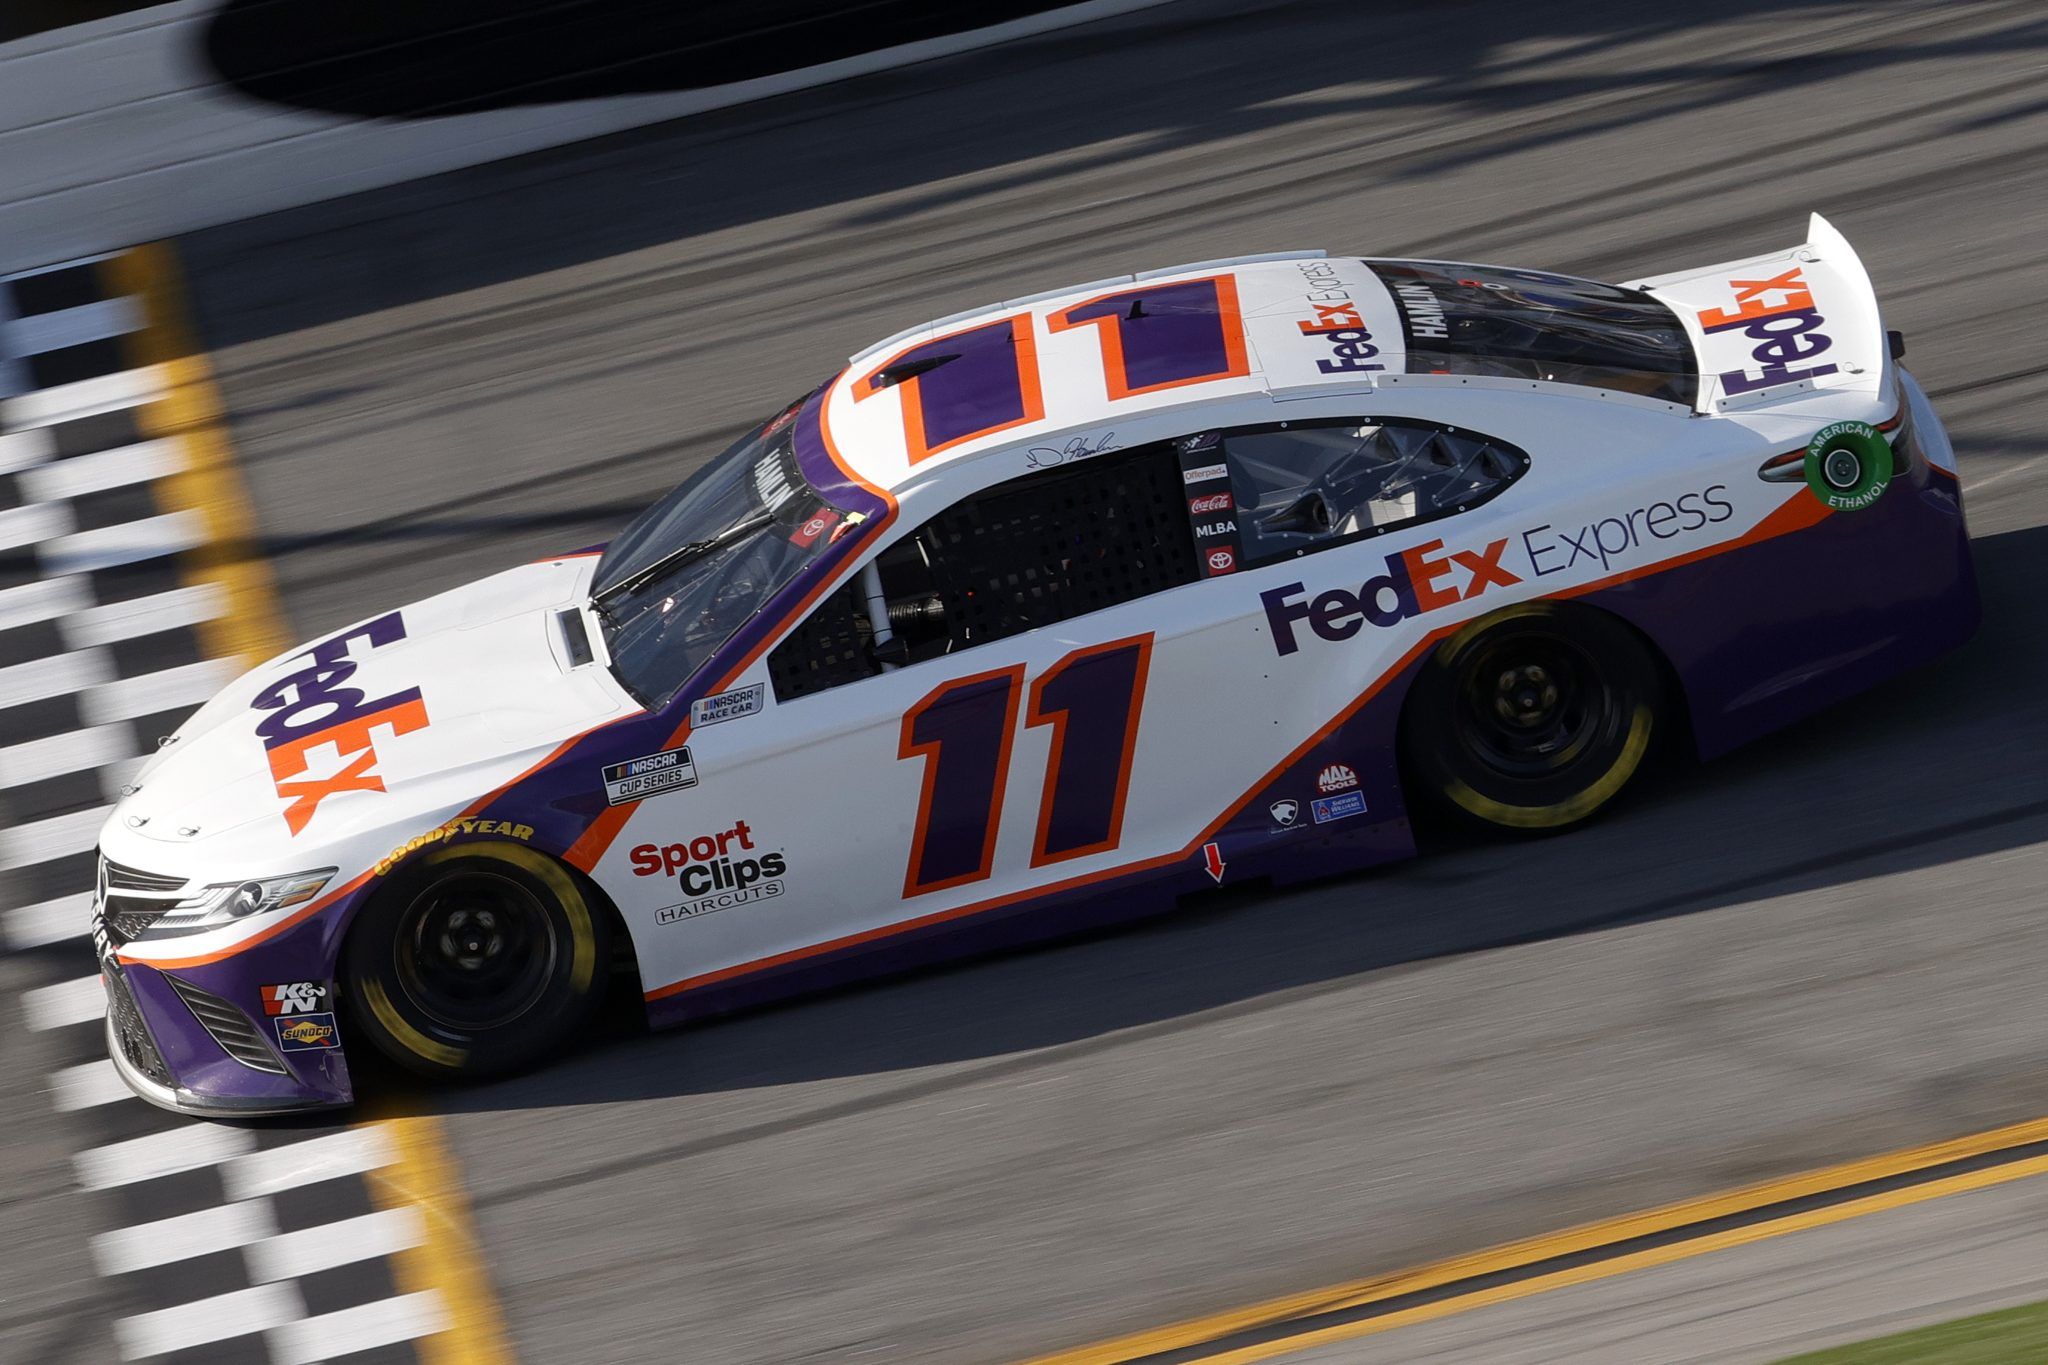 DAYTONA BEACH, FLORIDA - FEBRUARY 21: Denny Hamlin, driver of the #11 FedEx Express Toyota, drives during the NASCAR Cup Series O'Reilly Auto Parts 253 at Daytona International Speedway on February 21, 2021 in Daytona Beach, Florida. (Photo by Chris Graythen/Getty Images) | Getty Images